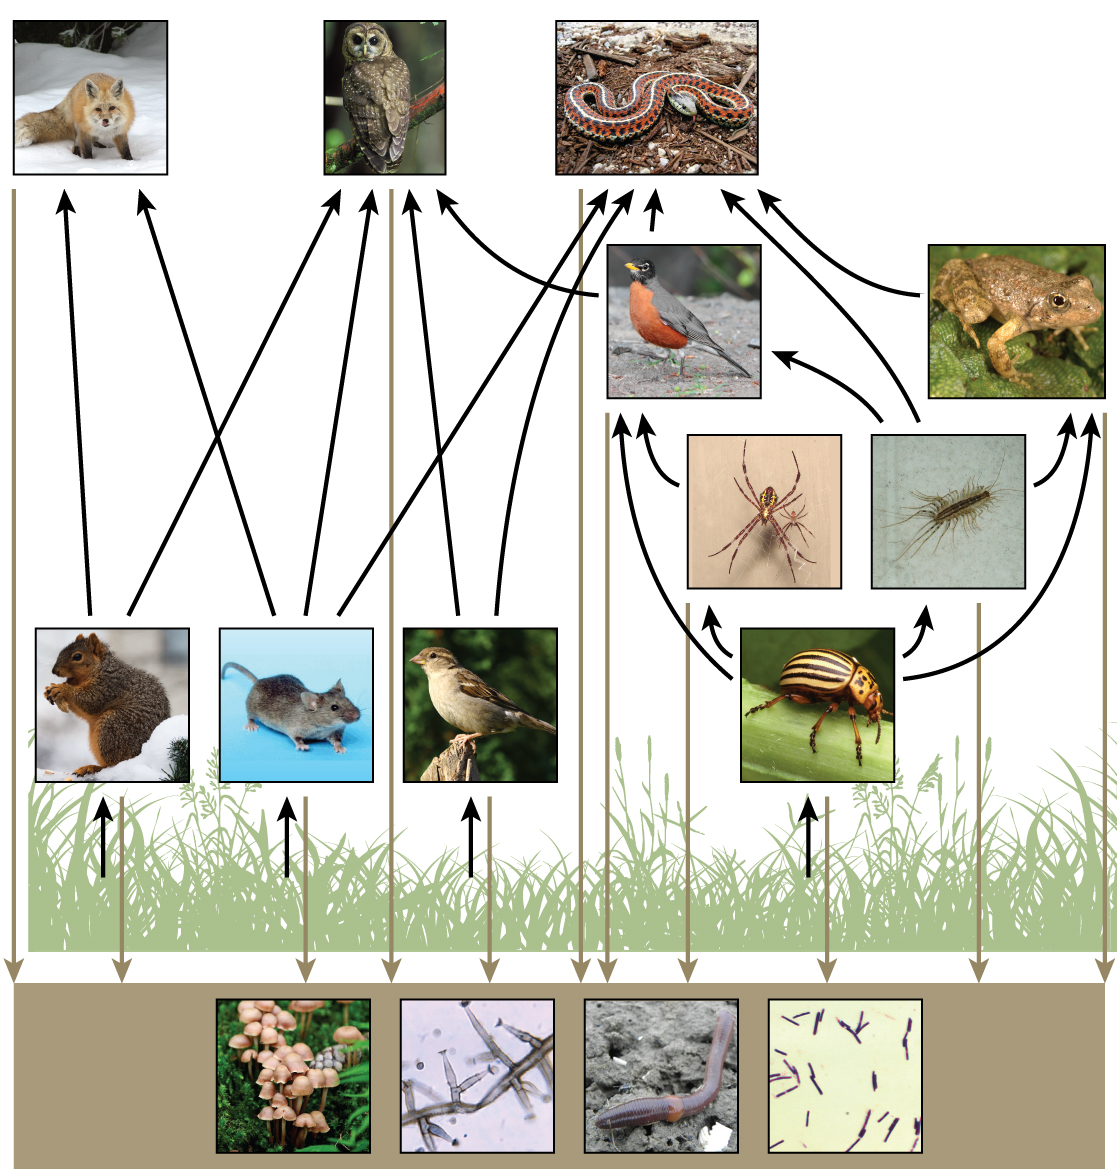 The bottom level of the illustration shows decomposers, which include fungi, mold, earthworms, and bacteria in the soil. The next level above decomposers shows the producers: plants. The level above the producers shows the primary consumers that eat the producers. Some examples are squirrels, mice, seed-eating birds, and beetles. Primary consumers are in turn eaten by secondary consumers, such as robins, centipedes, spiders, and toads. The tertiary consumers such as foxes, owls, and snakes eat secondary and primary consumers. All of the consumers and producers eventually become nourishment for the decomposers.